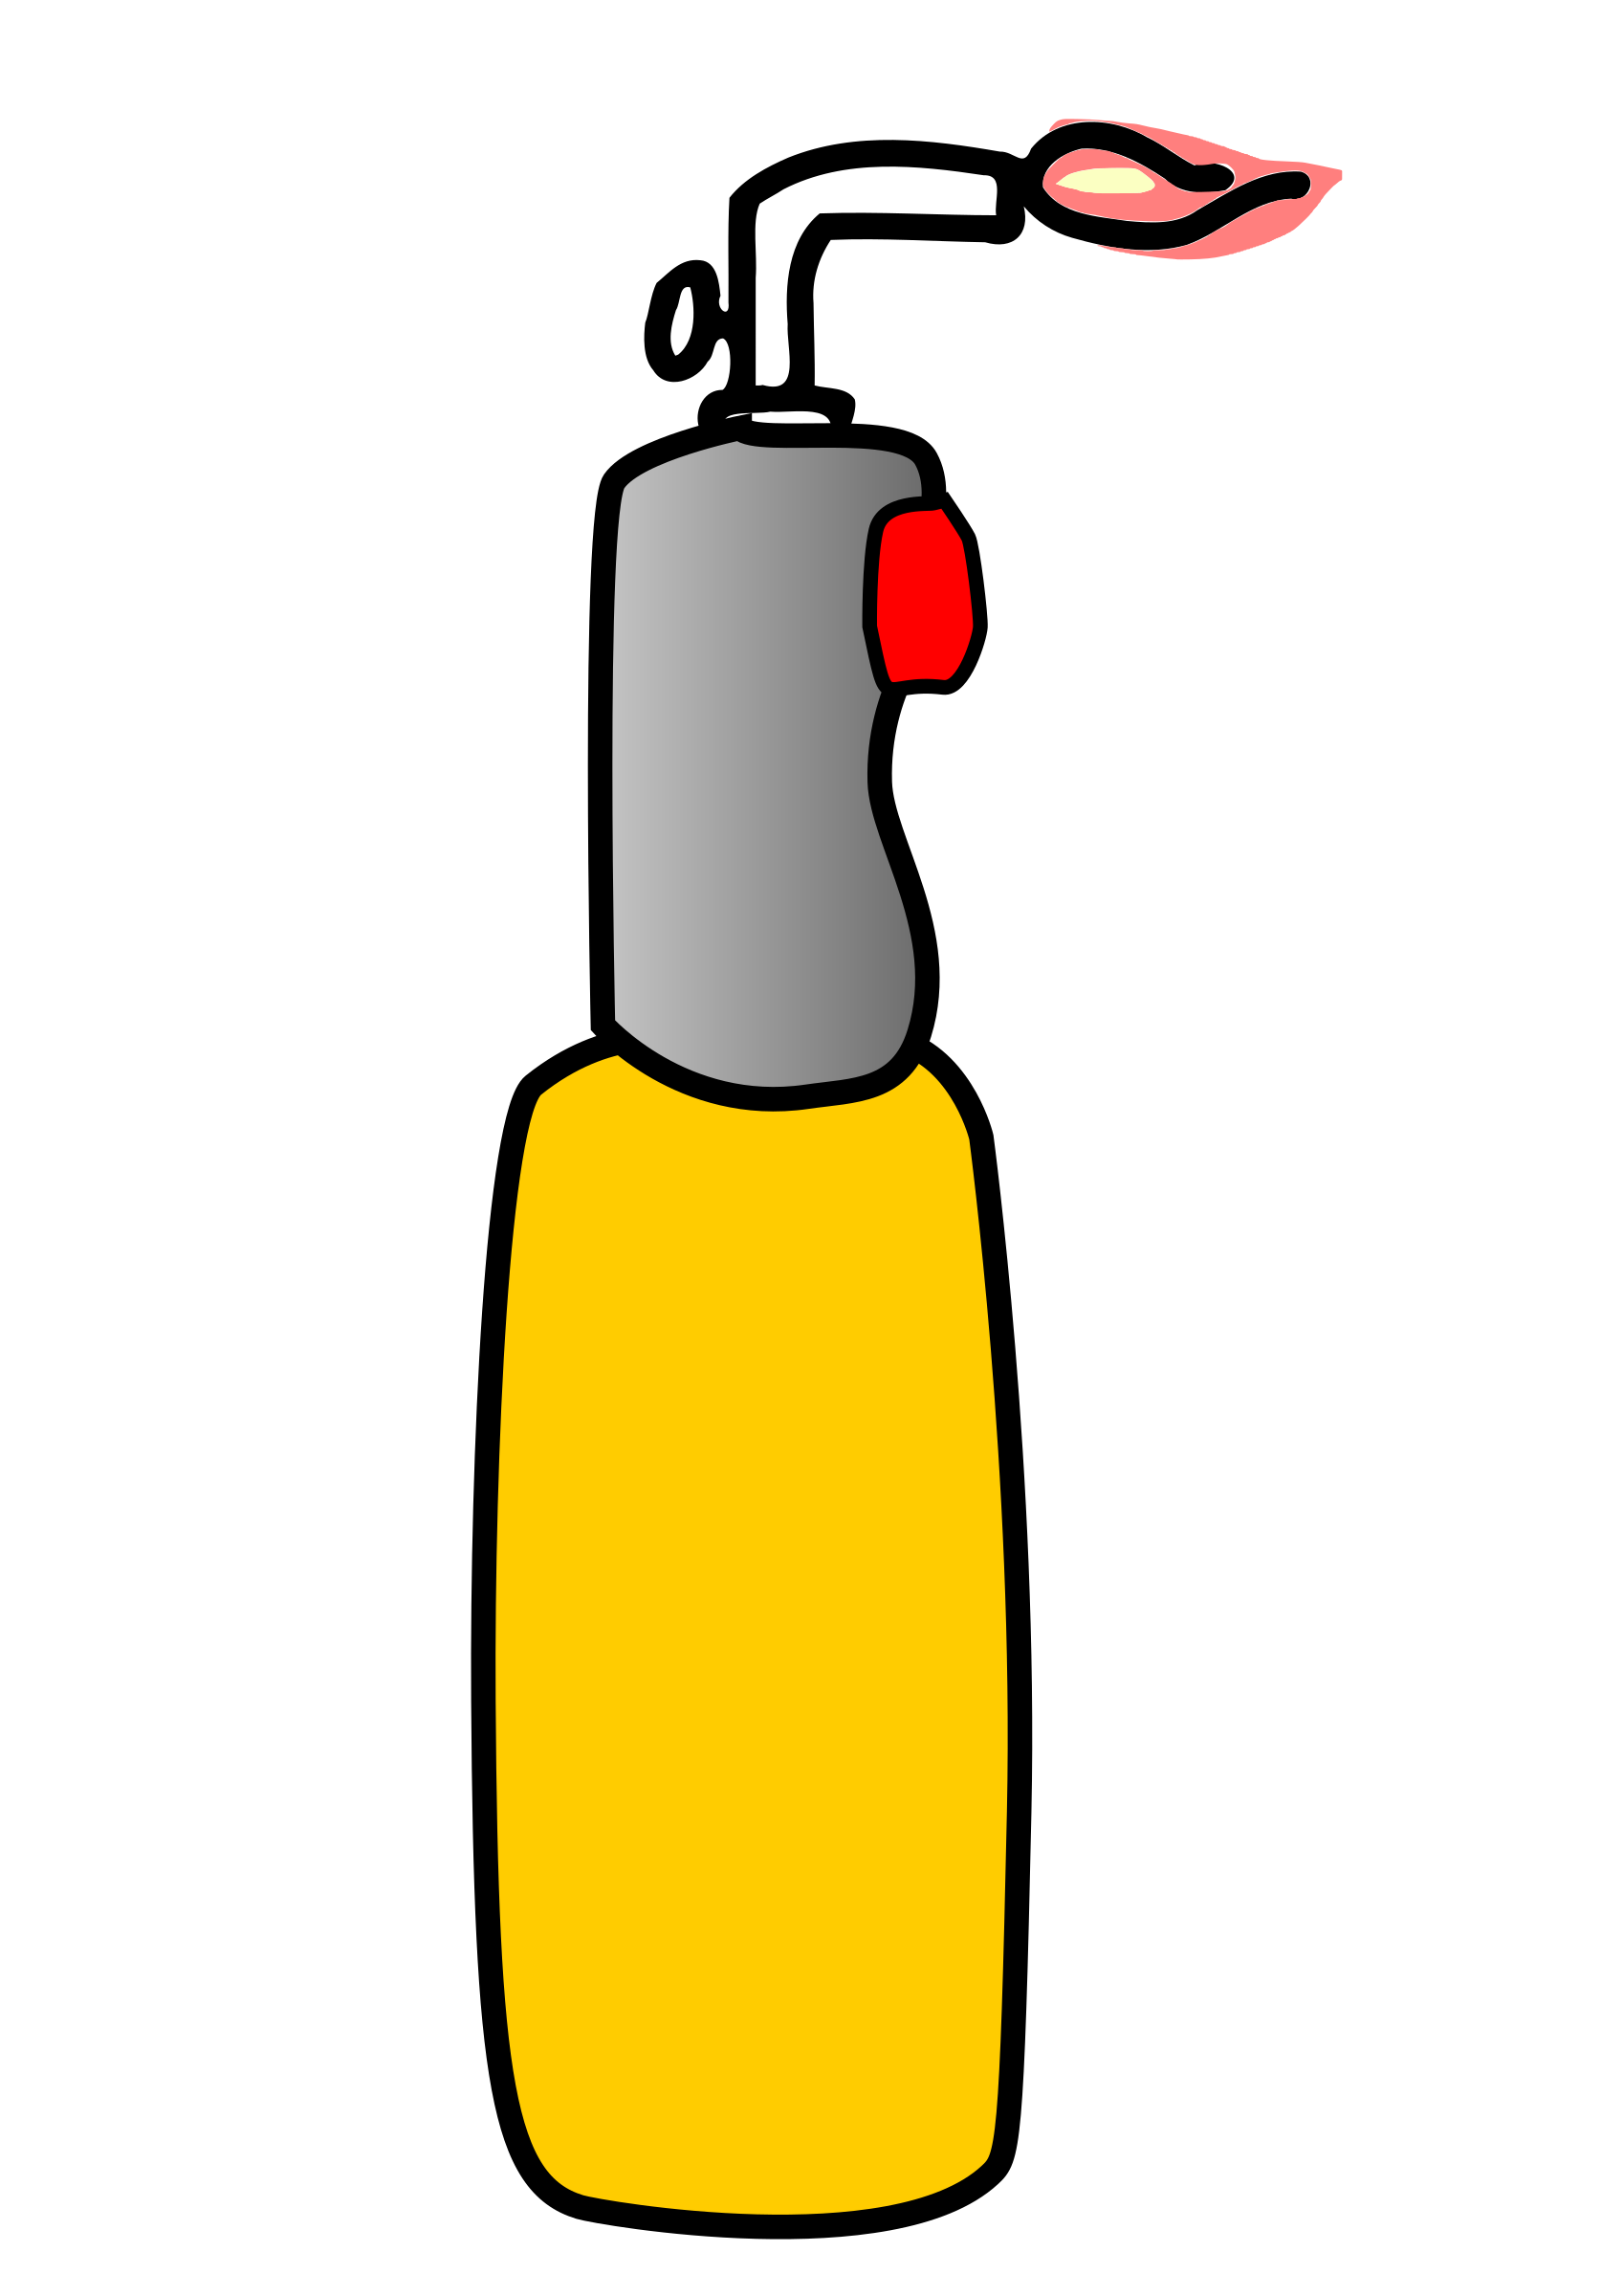 Blow torch clipart.